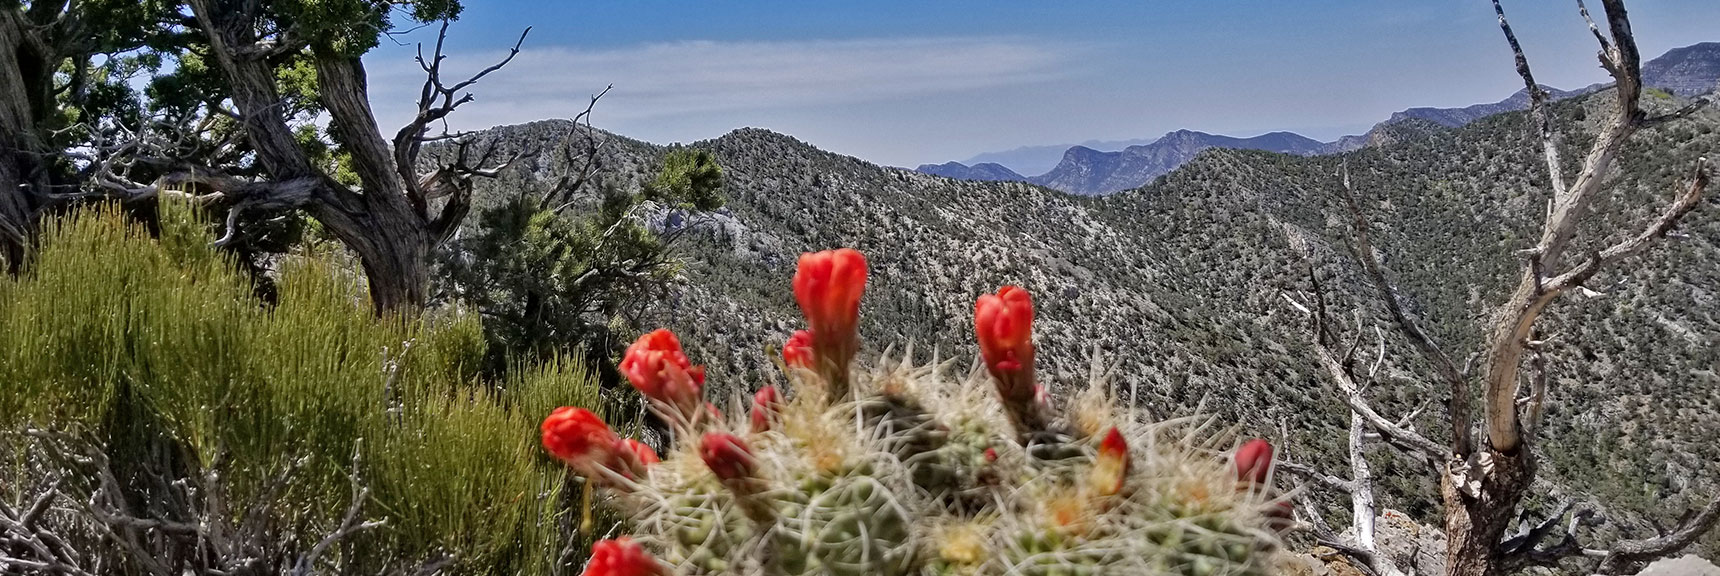 Cactus Blooms At Devil's Slide Summit, El Padre Mt. In Background | La Madre Mountain Northern Approach, Nevada